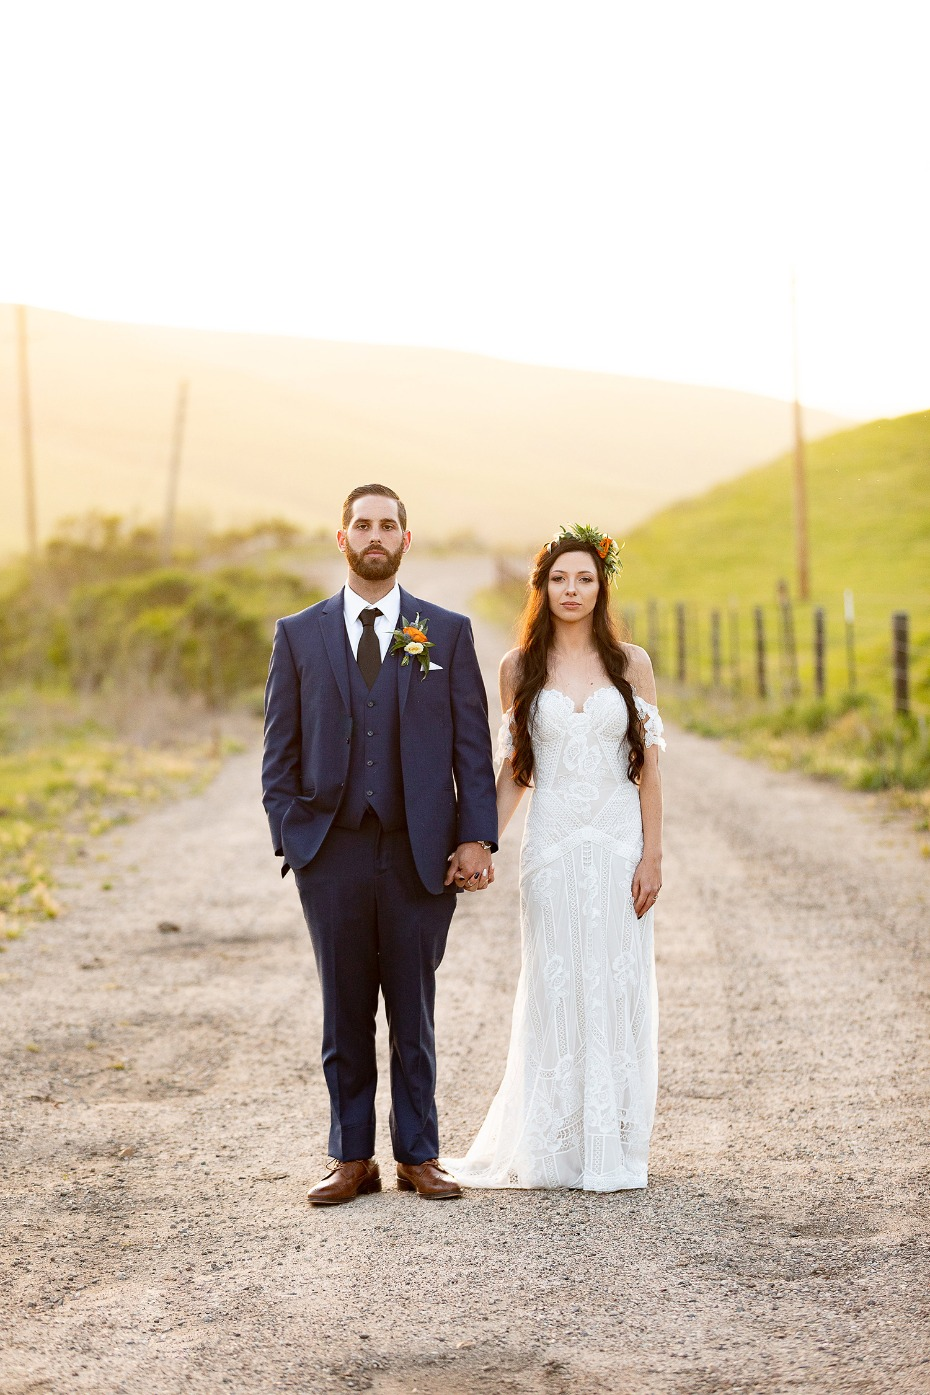 Cannabis infused wedding in California